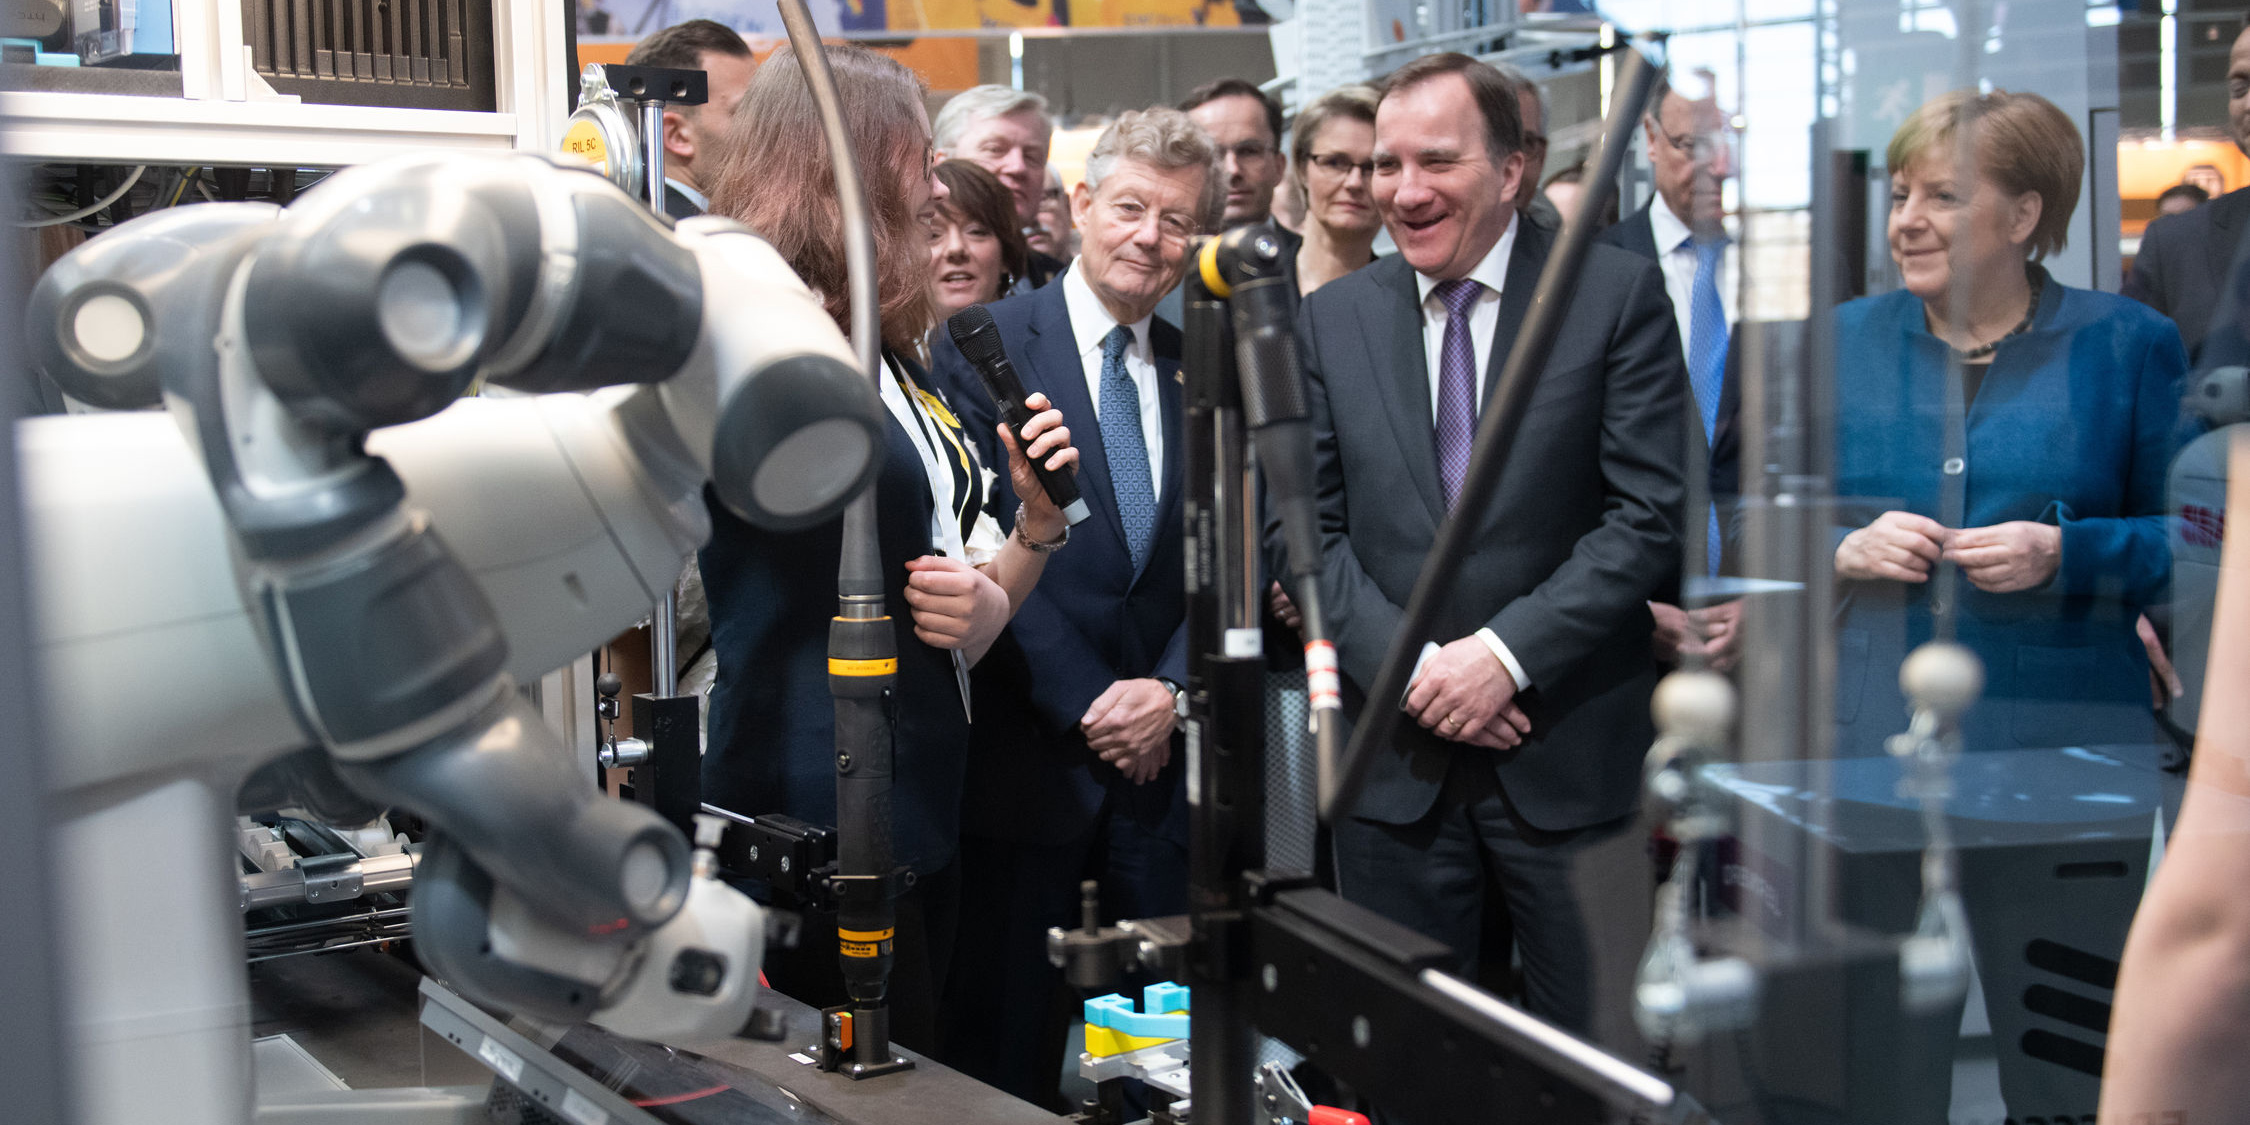 Two 17-year-olds show the programming of the ABB robot Yumi in a meeting with Prime Minister Stefan Löfven and Chancellor Angela Merkel. Photo: Deutsche Messe.